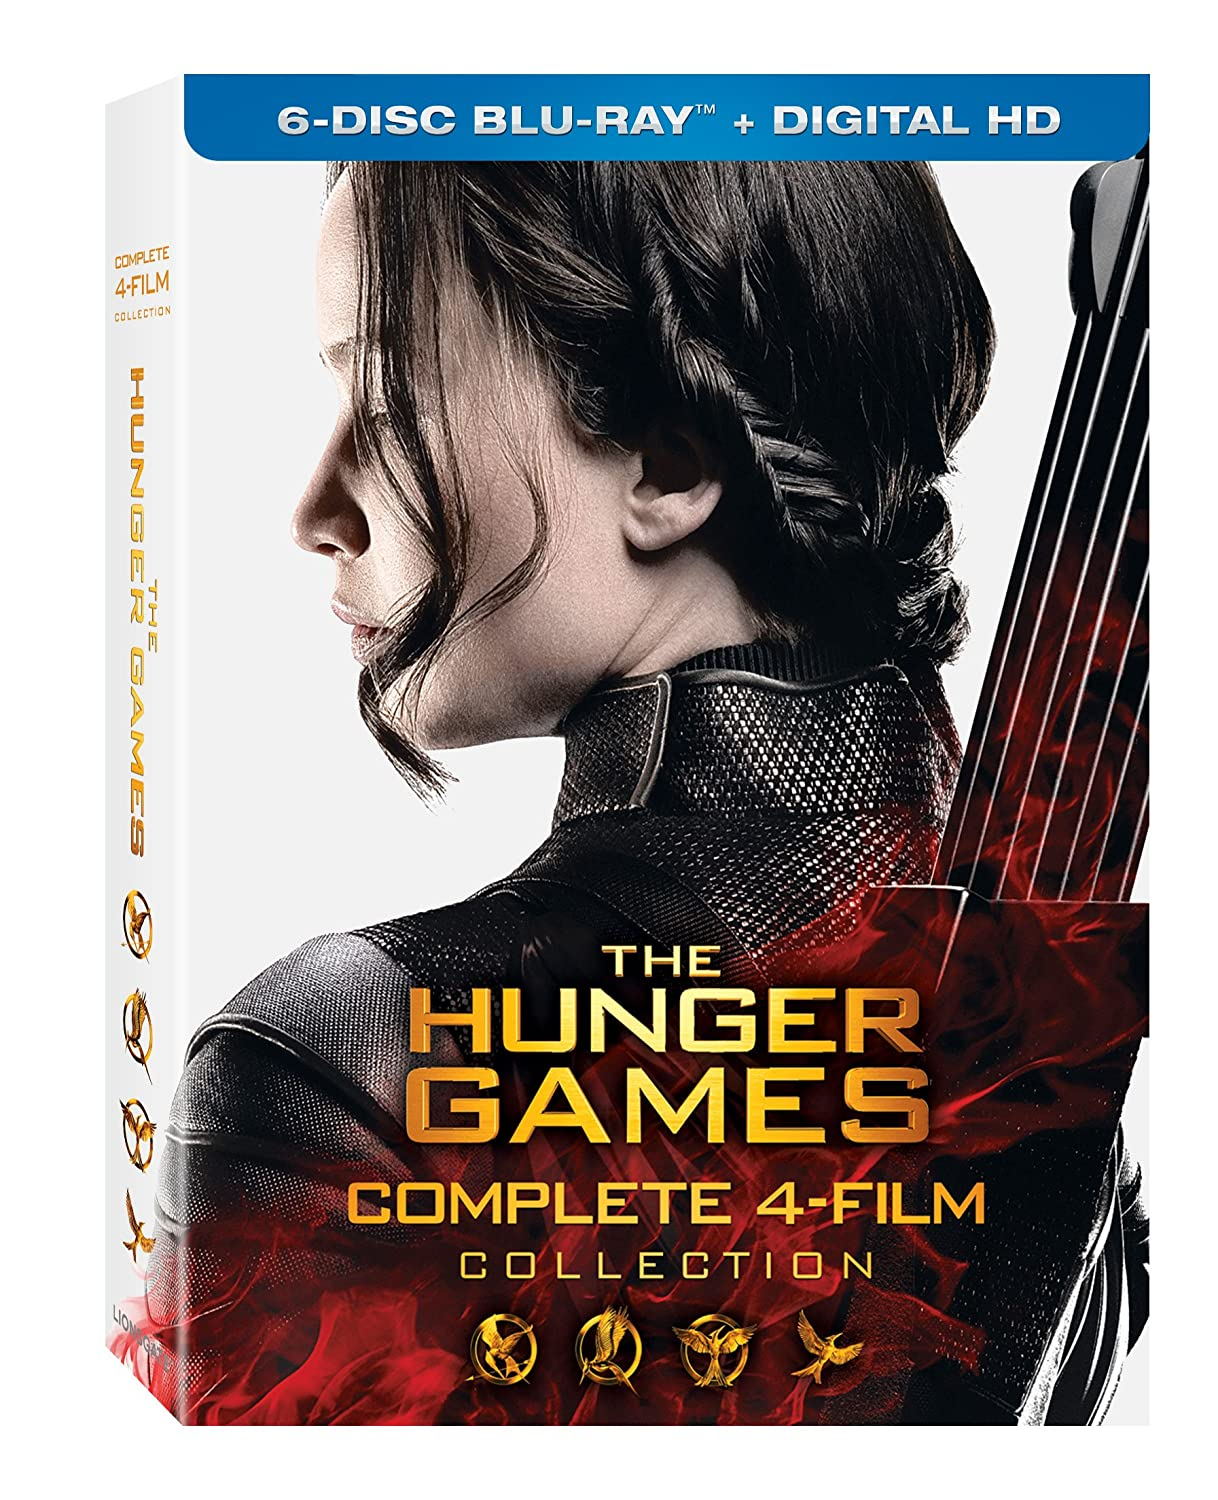 The Hunger Games: Complete 4 Film Collection [Blu-ray + Digital HD]